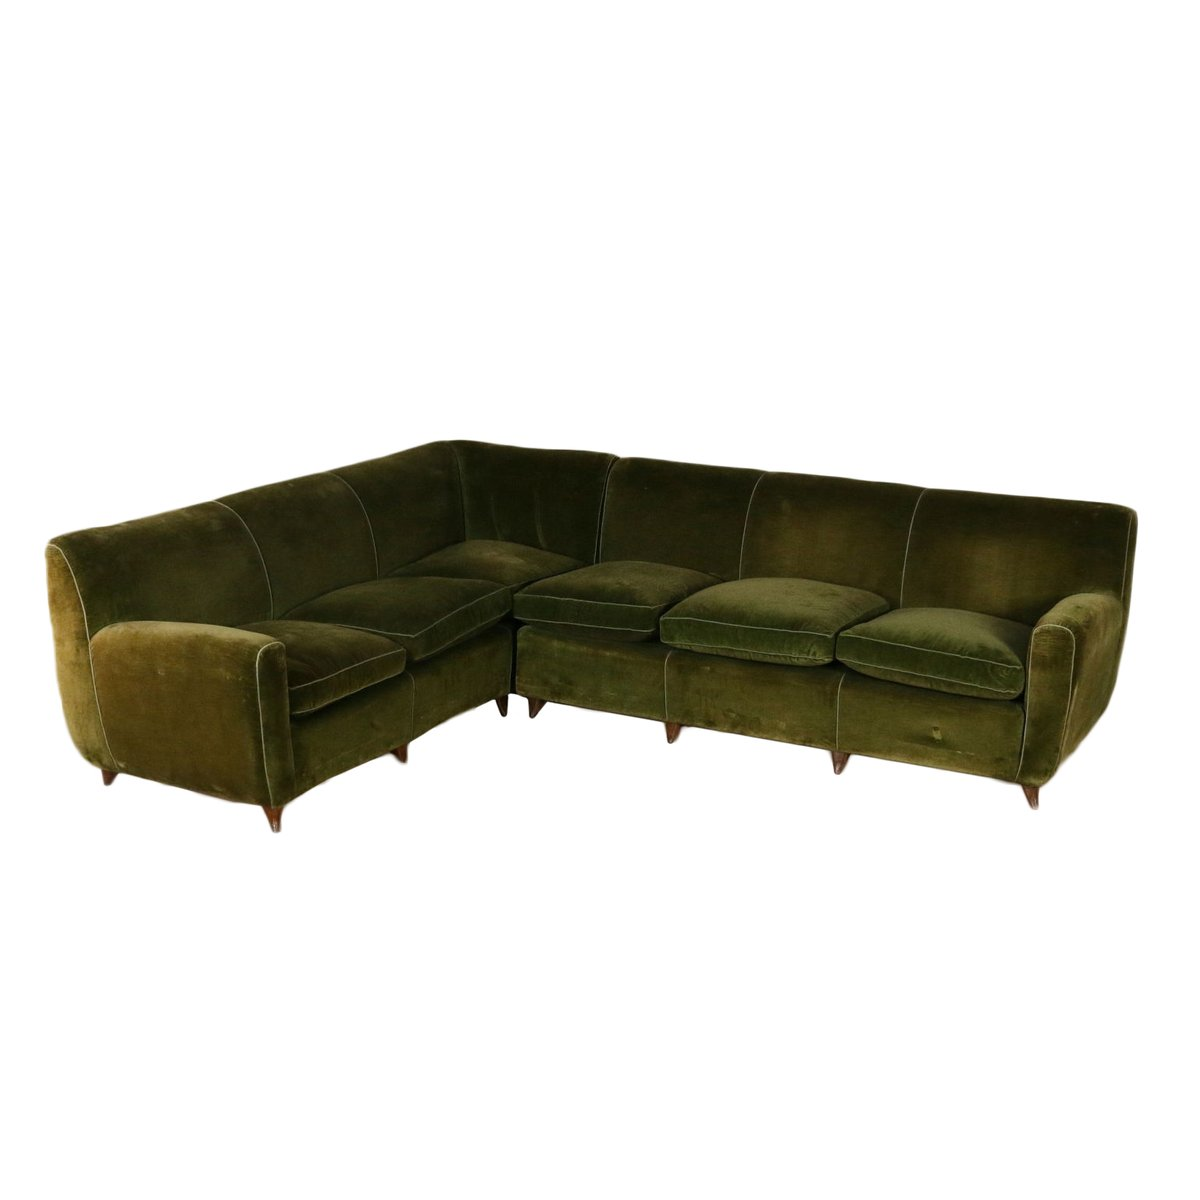 big chunky corner sofas log furniture sofa table vintage dfs look leather chaise